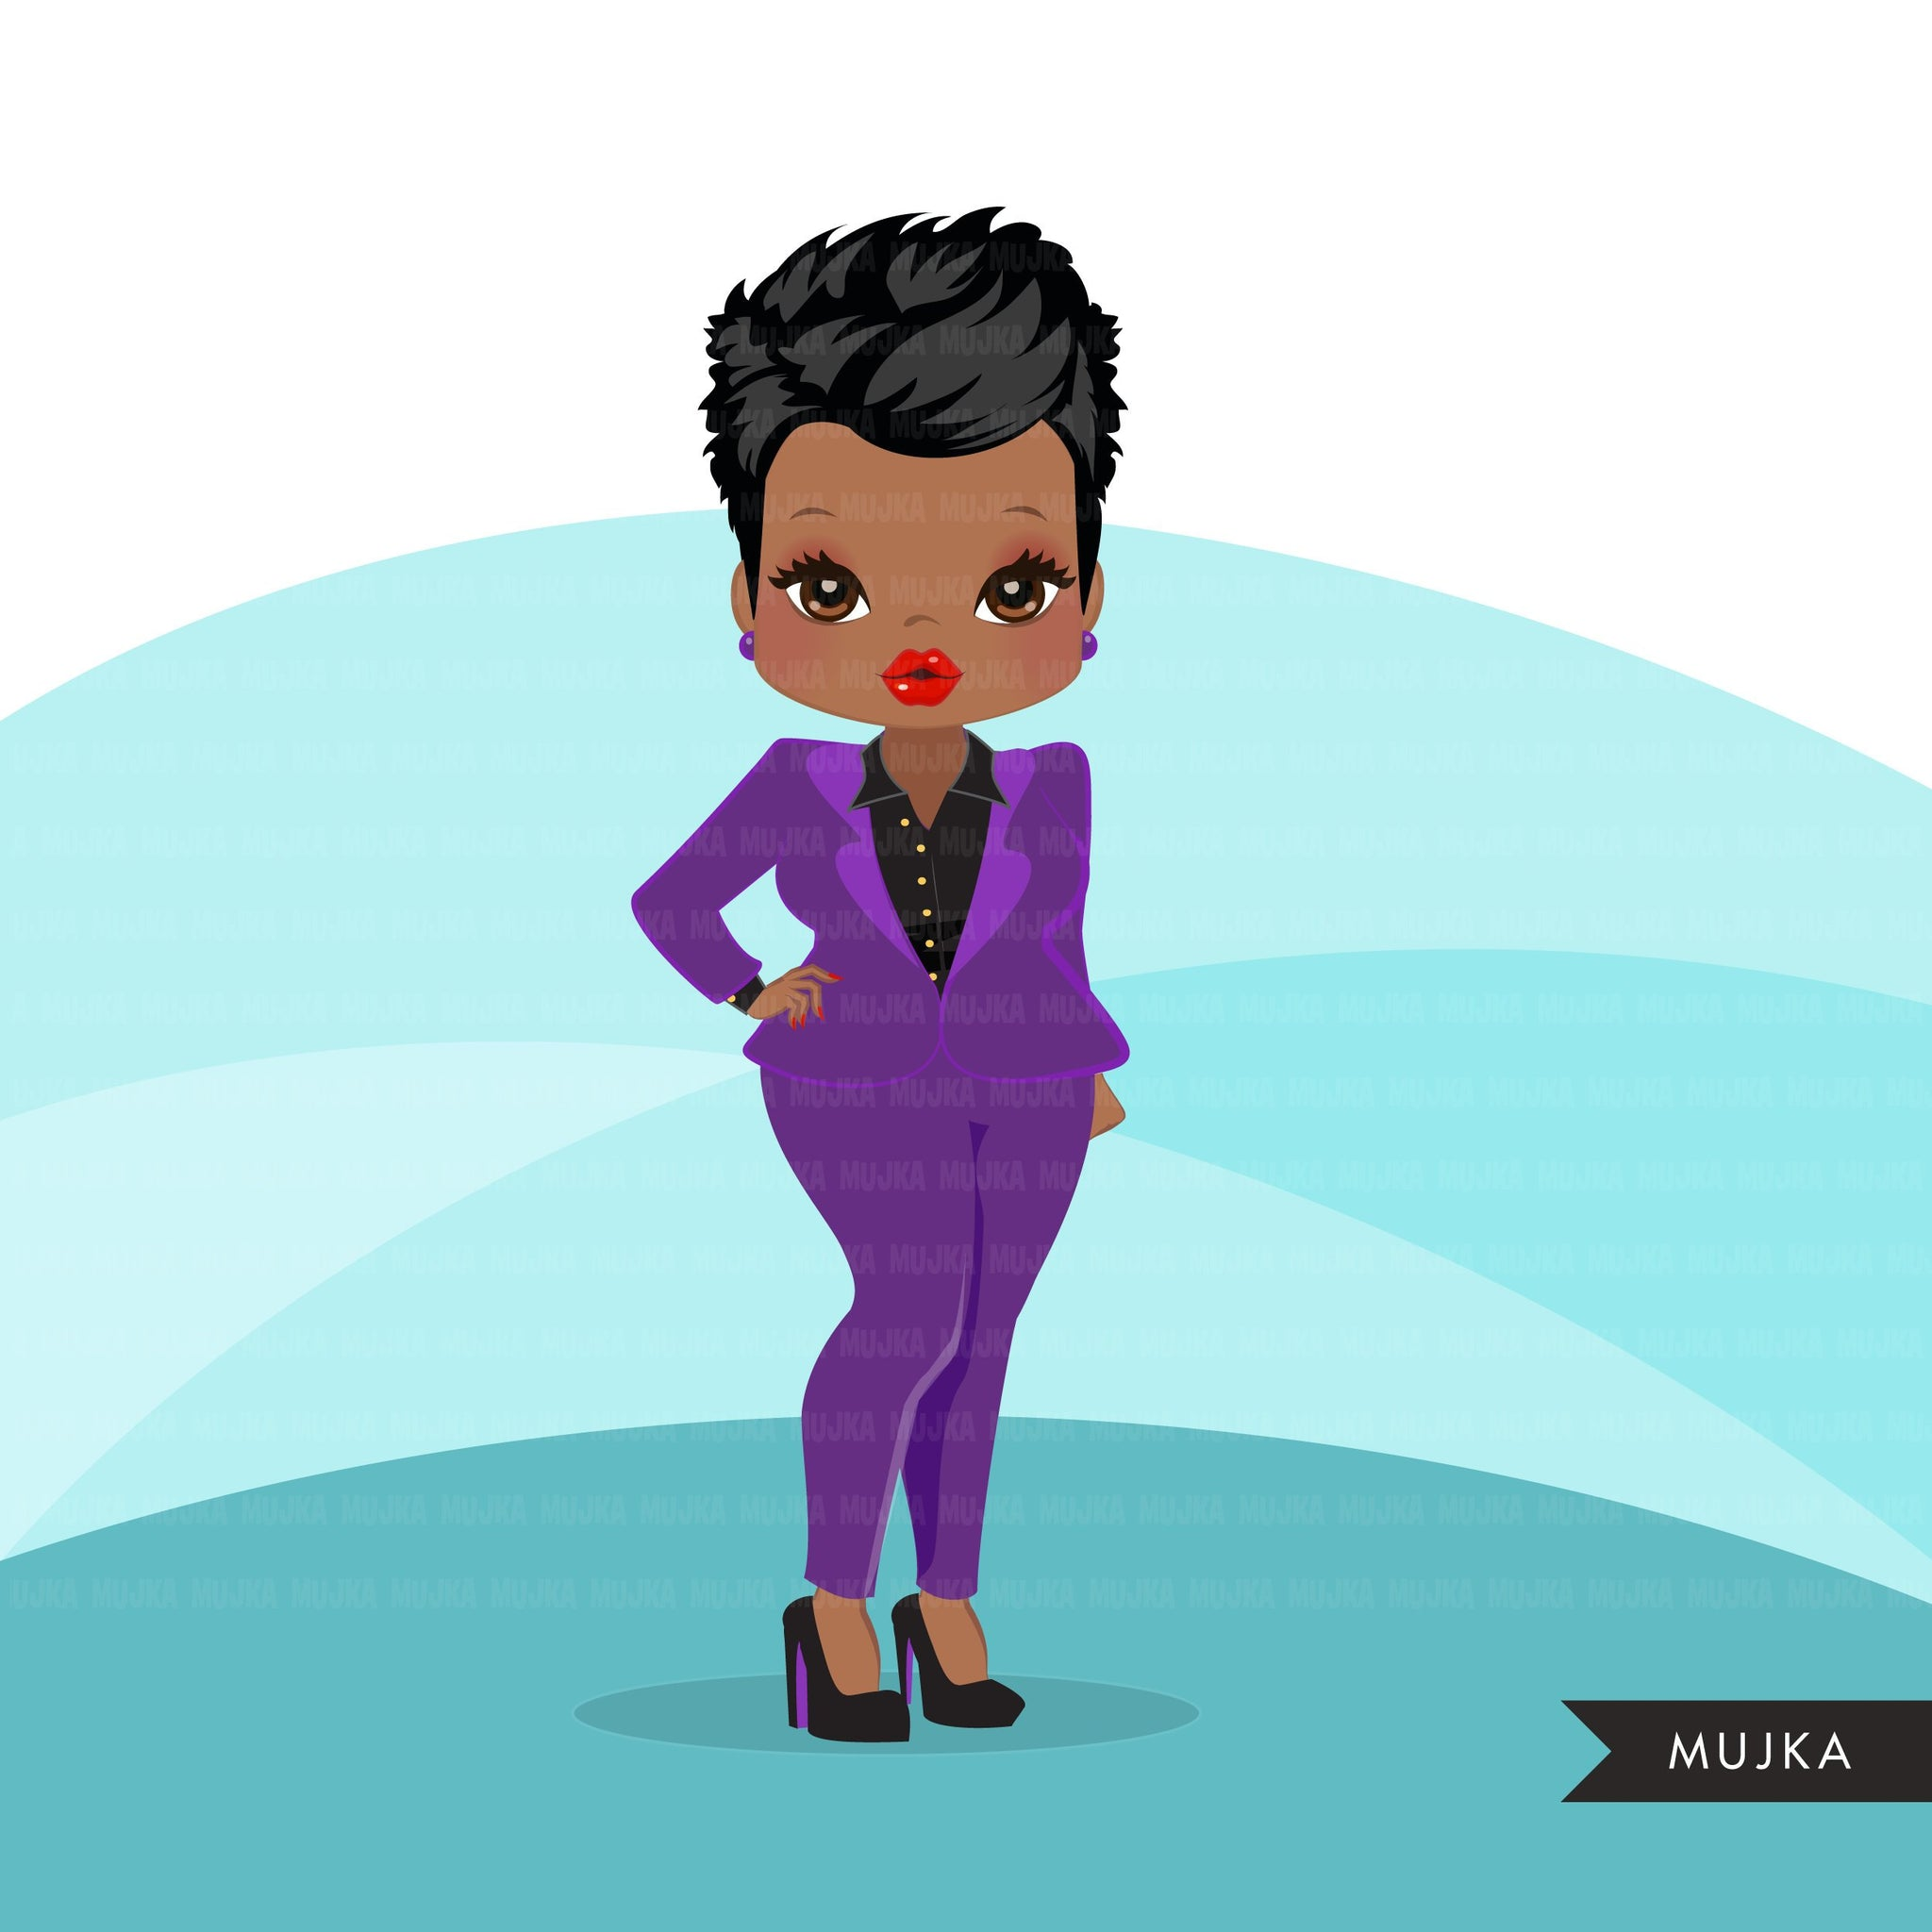 Afro woman clipart with purple business suit, briefcase and glasses black girl graphics, print and cut sublimation clip art